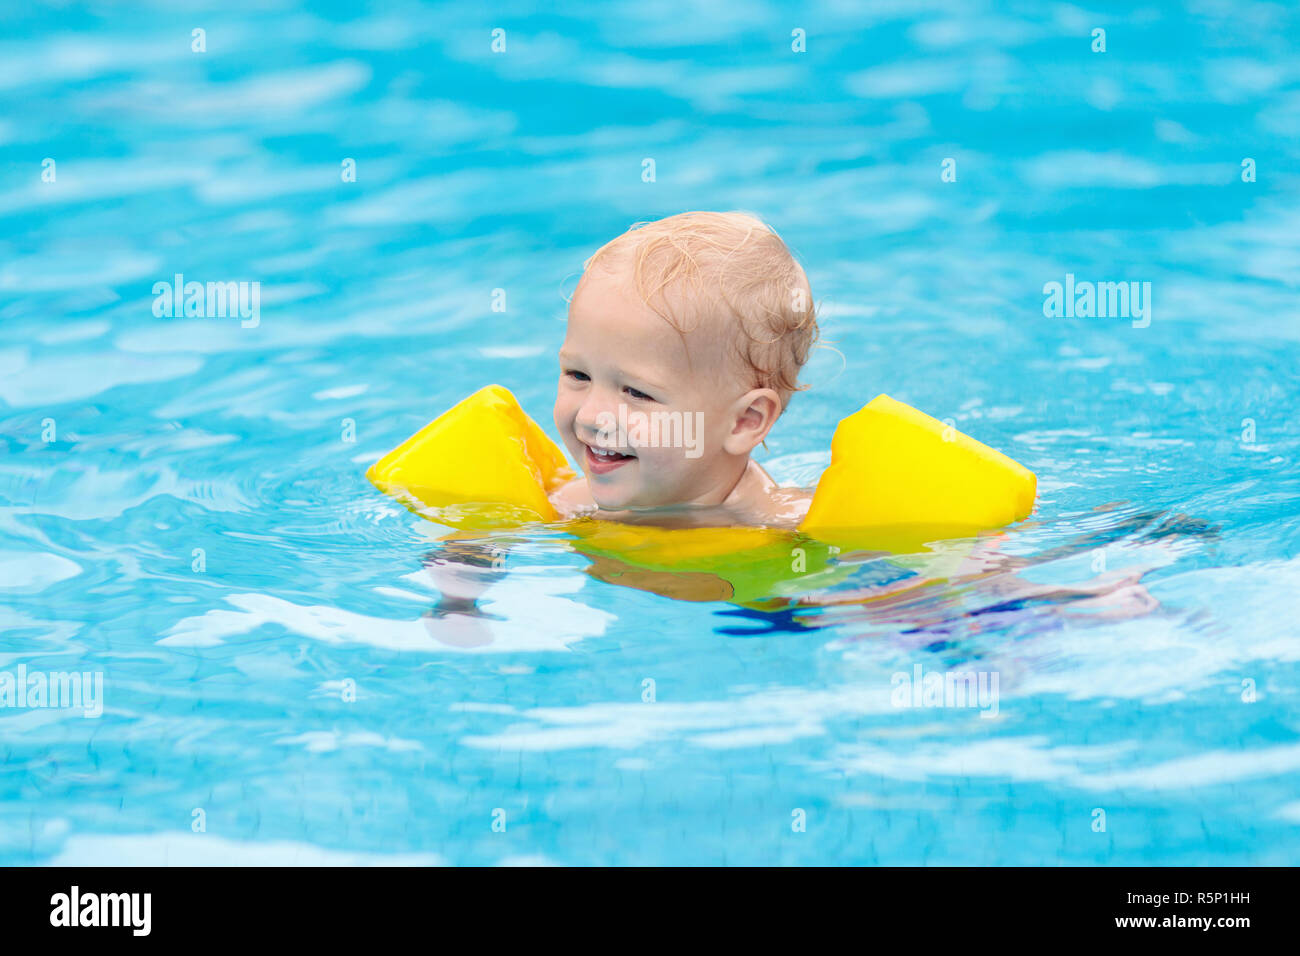 6792a3dc33 Baby with inflatable armbands in swimming pool. Little boy learning to swim  in outdoor pool